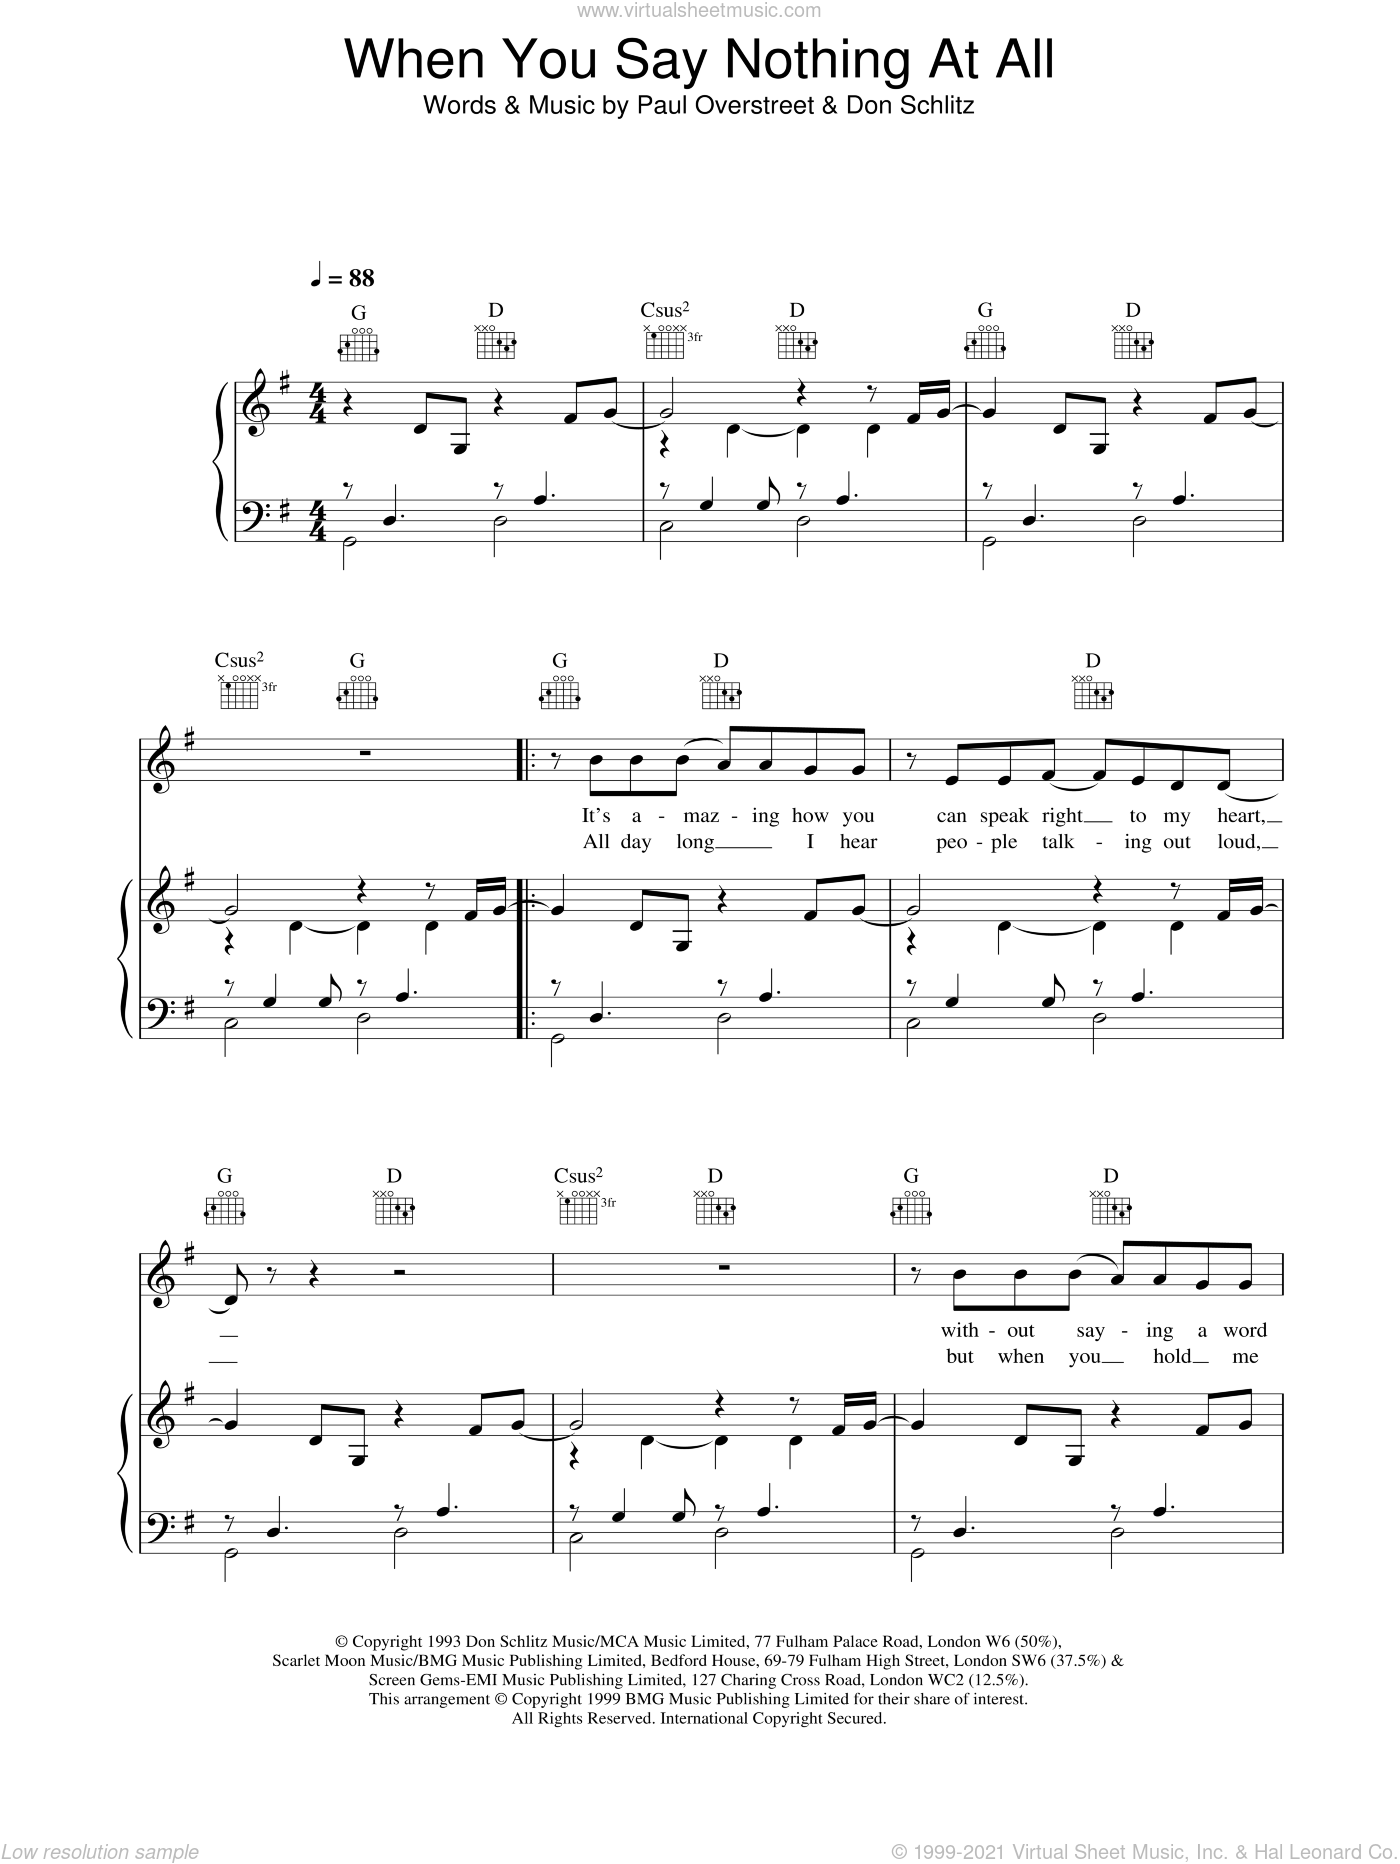 When You Say Nothing At All sheet music for voice, piano or guitar by Boyzone, Ronan Keating, Don Schlitz and Paul Overstreet, intermediate skill level